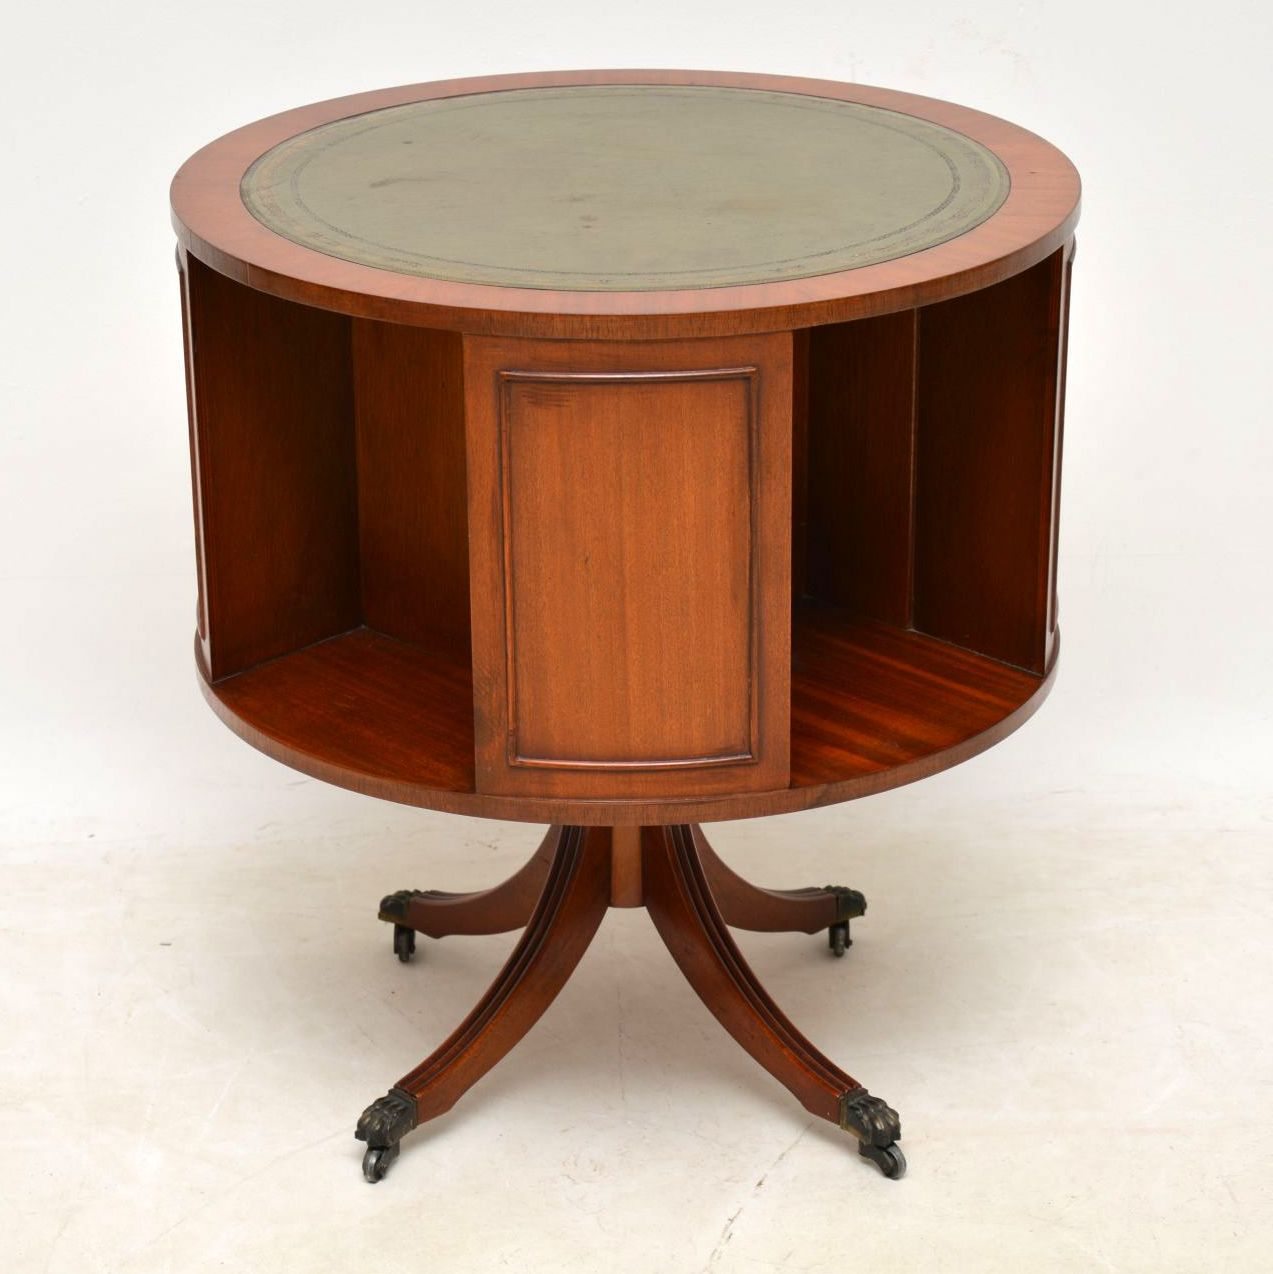 Antique Regency Style Mahogany & Leather Drum Table